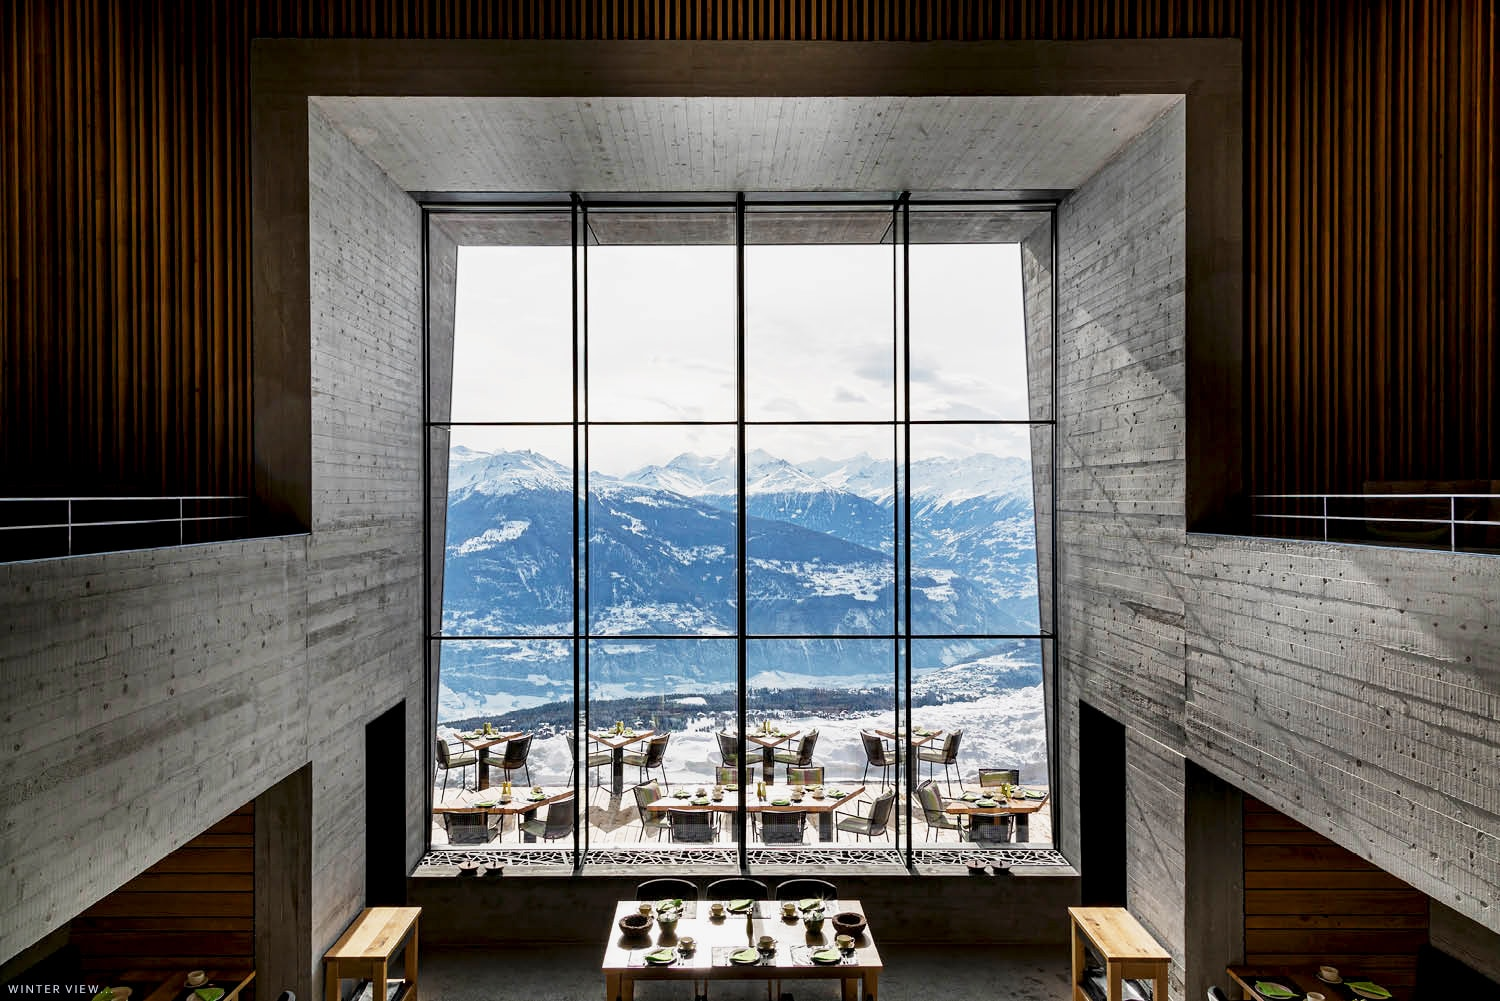 Chetzeron design Hotel, Cran Montana-large view's winter-as seen on PARIDEO sustainable interior design